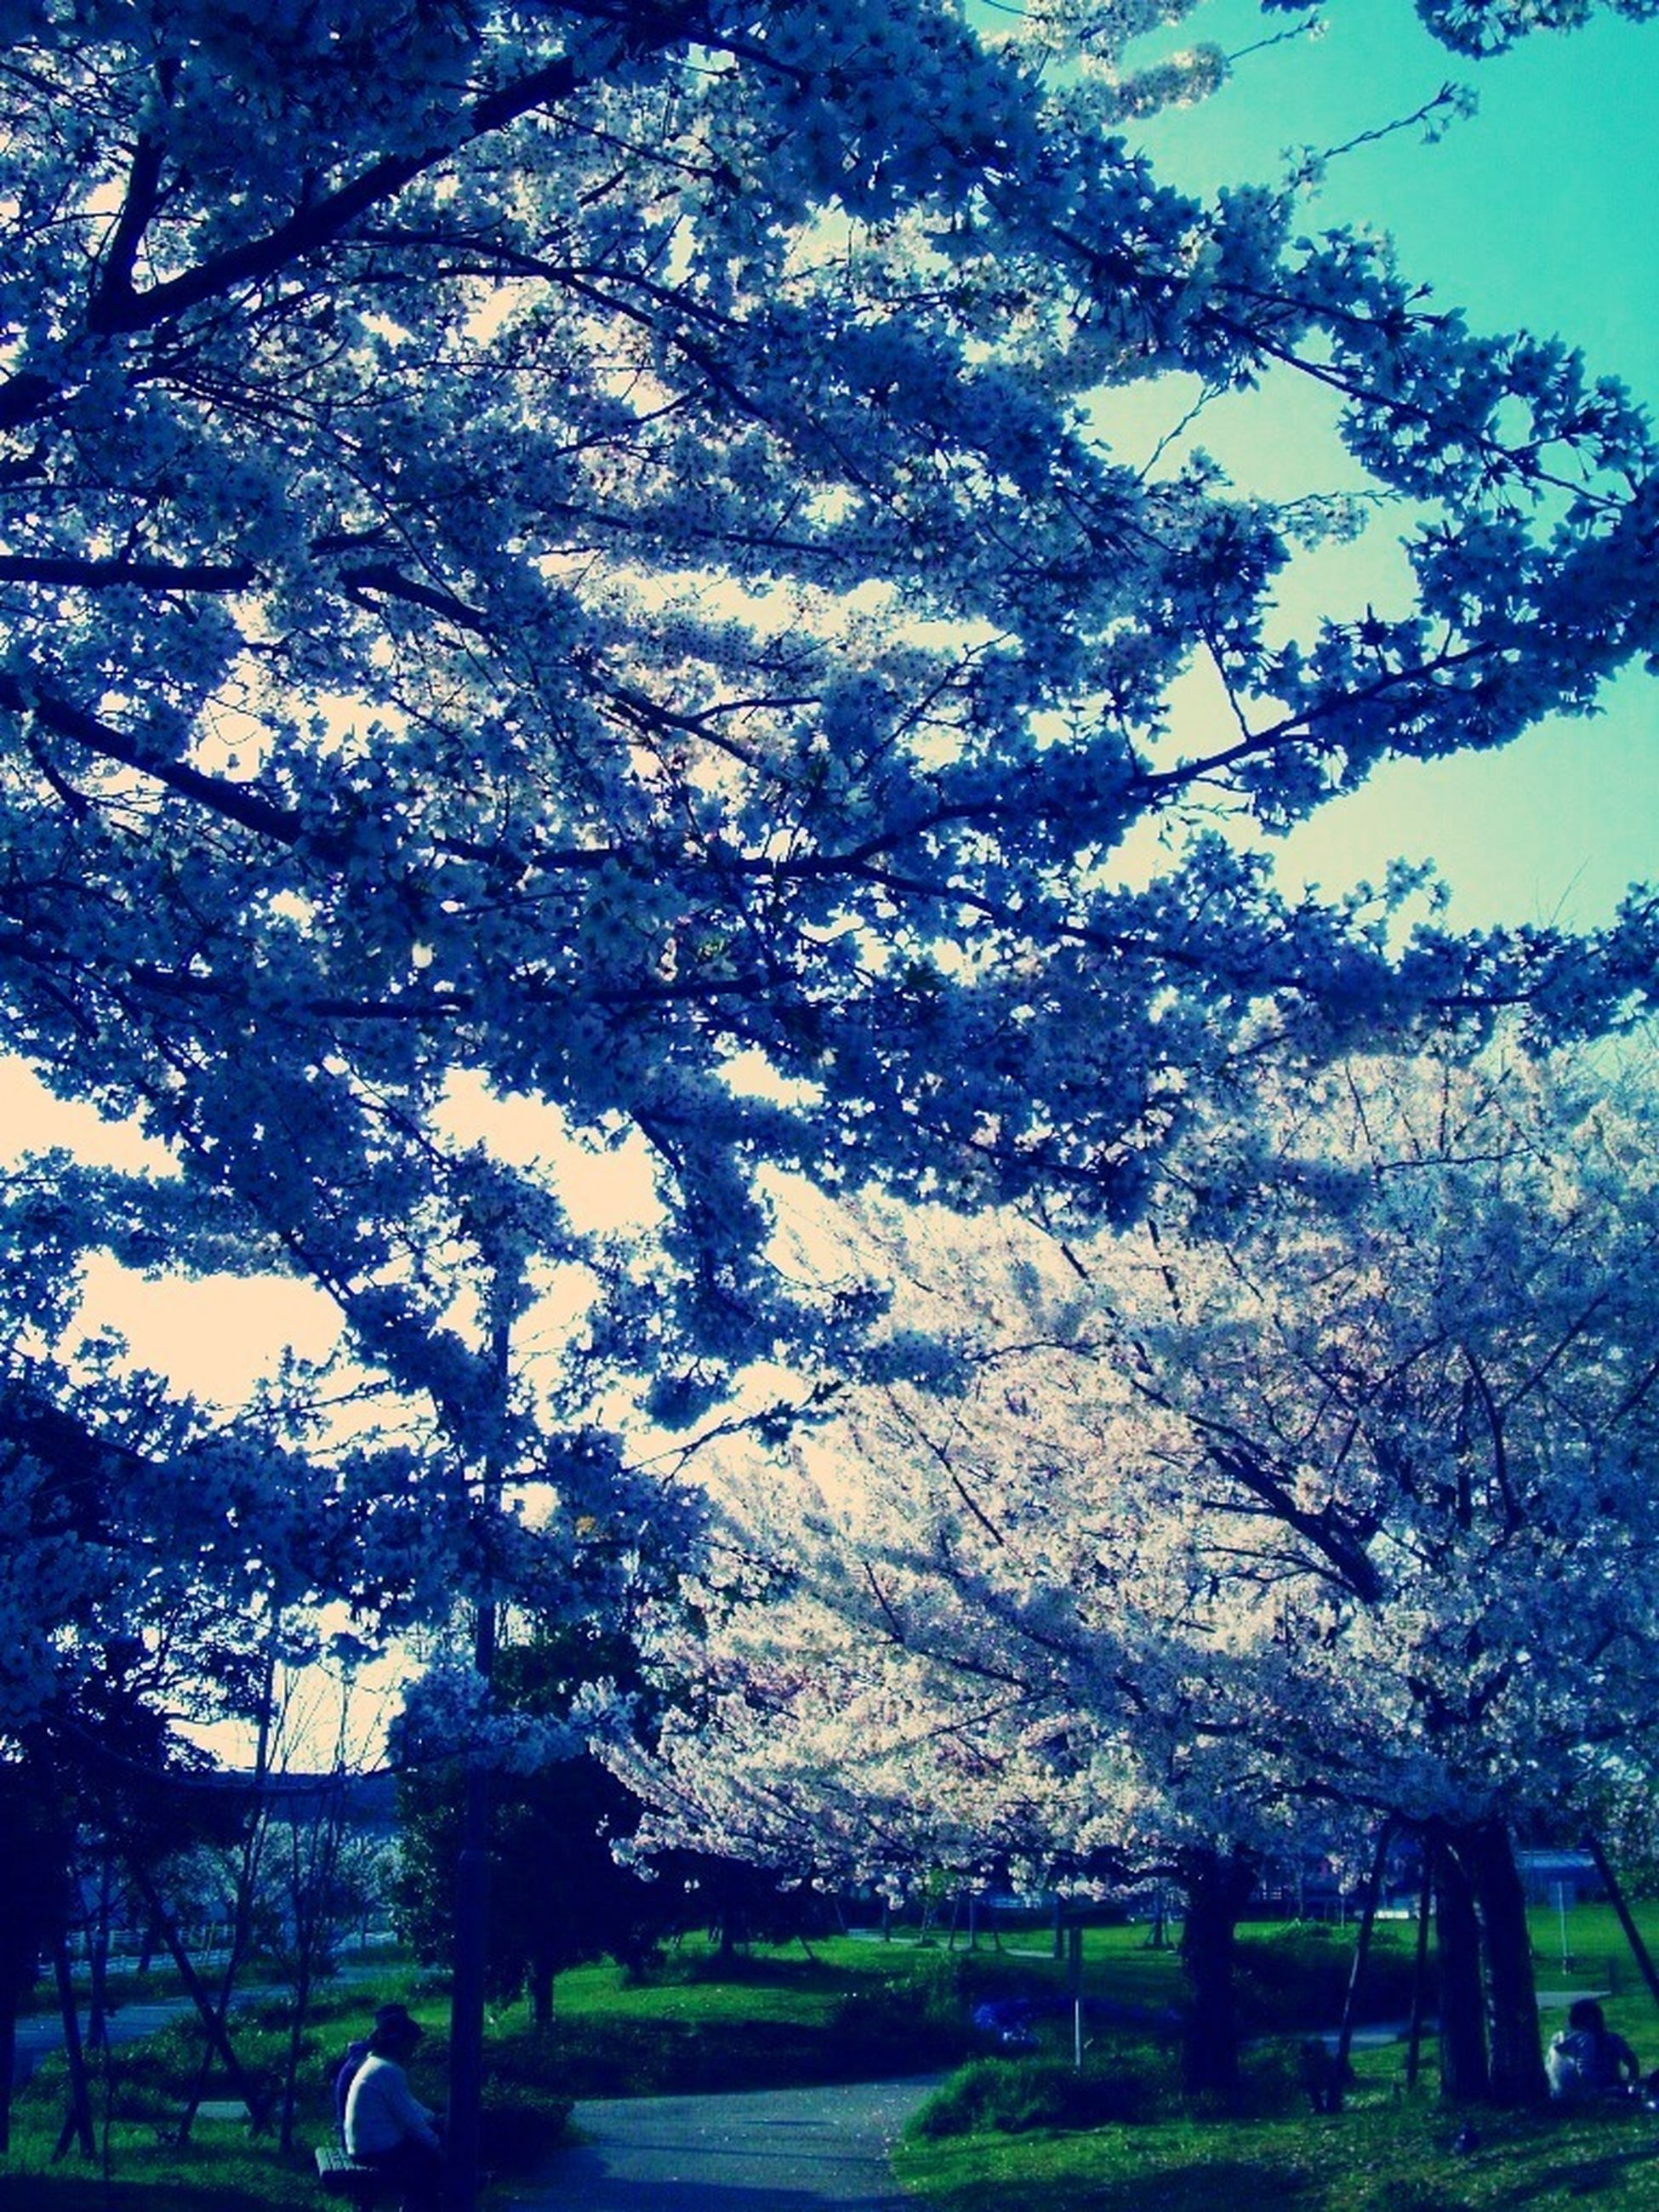 tree, branch, beauty in nature, growth, nature, tranquility, sky, flower, tranquil scene, scenics, bare tree, landscape, park - man made space, field, day, outdoors, low angle view, clear sky, no people, sunlight